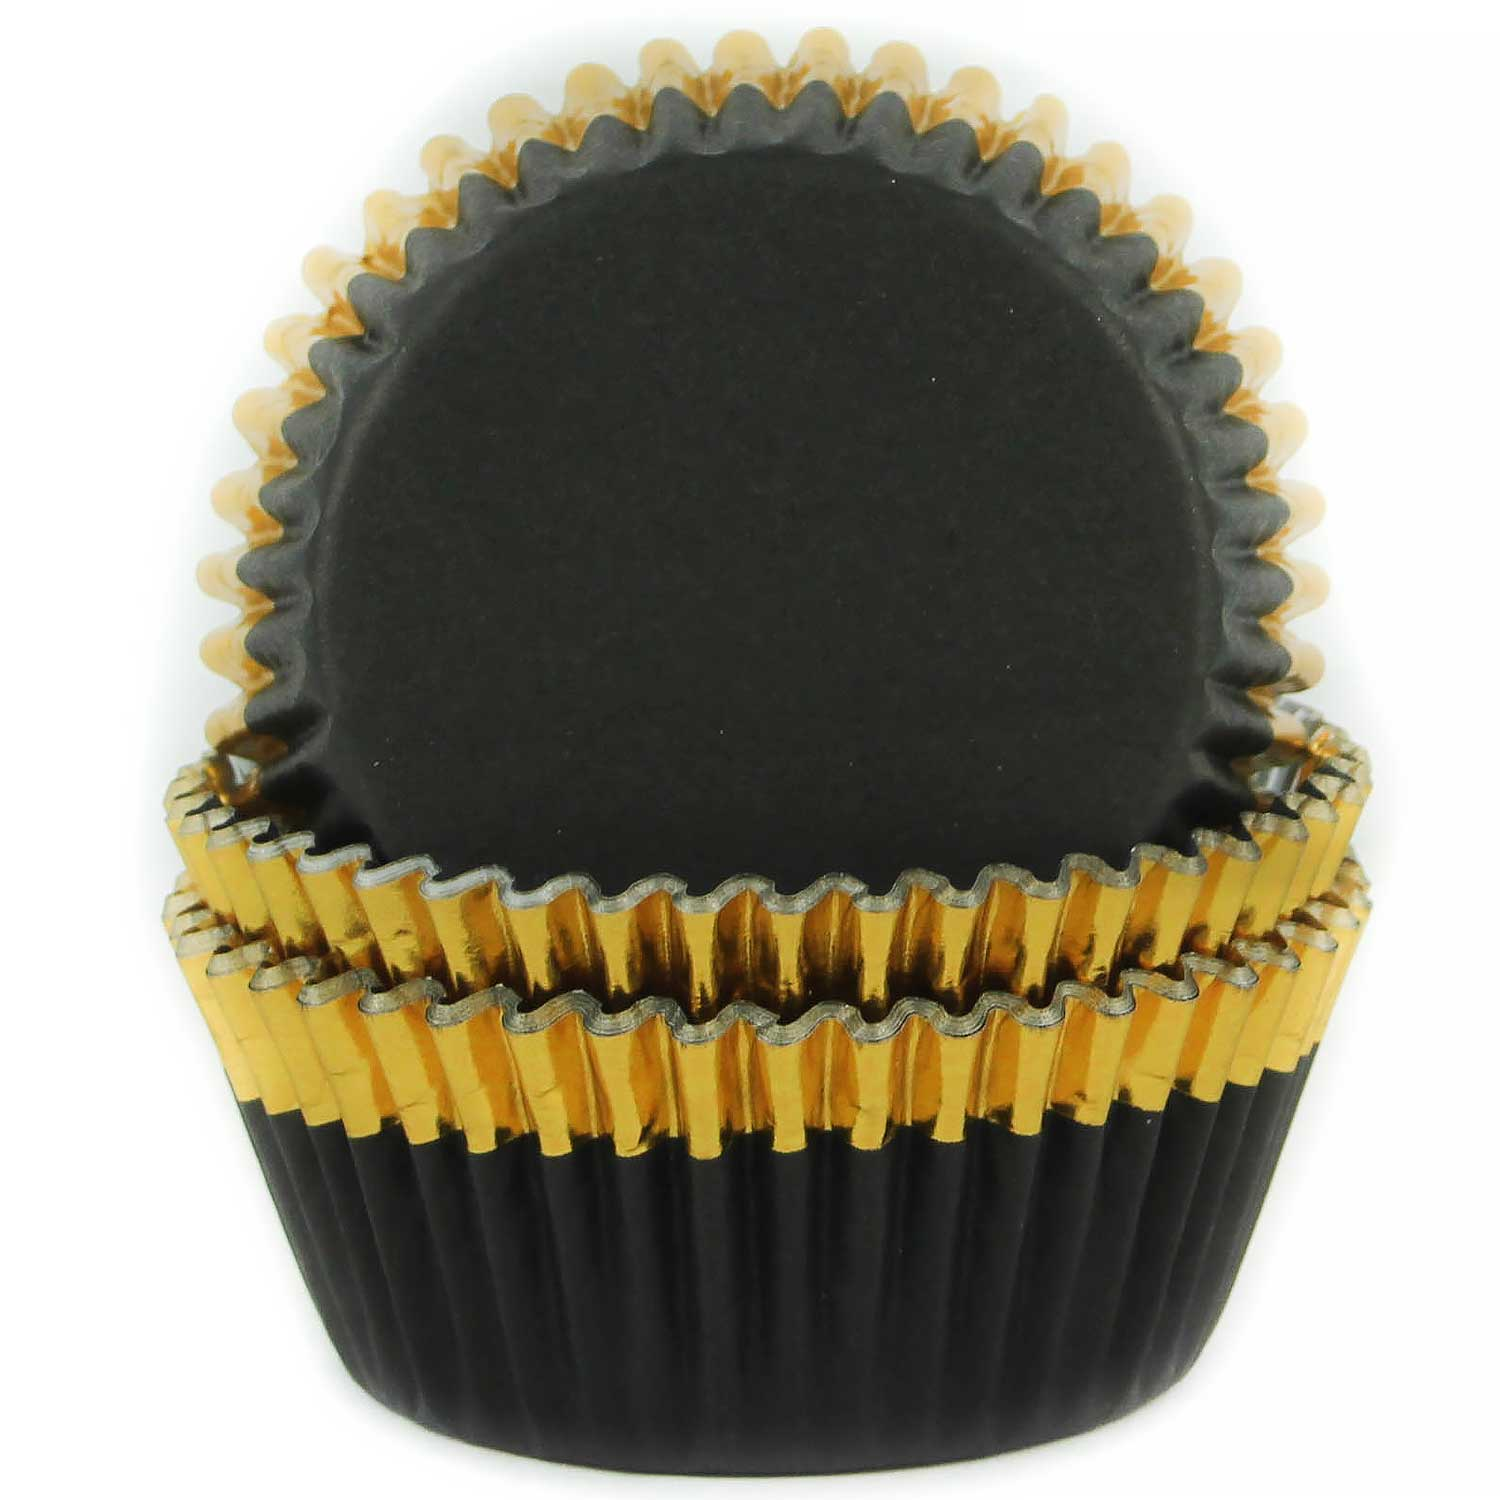 Black w/ Gold Trim Standard Baking Cups